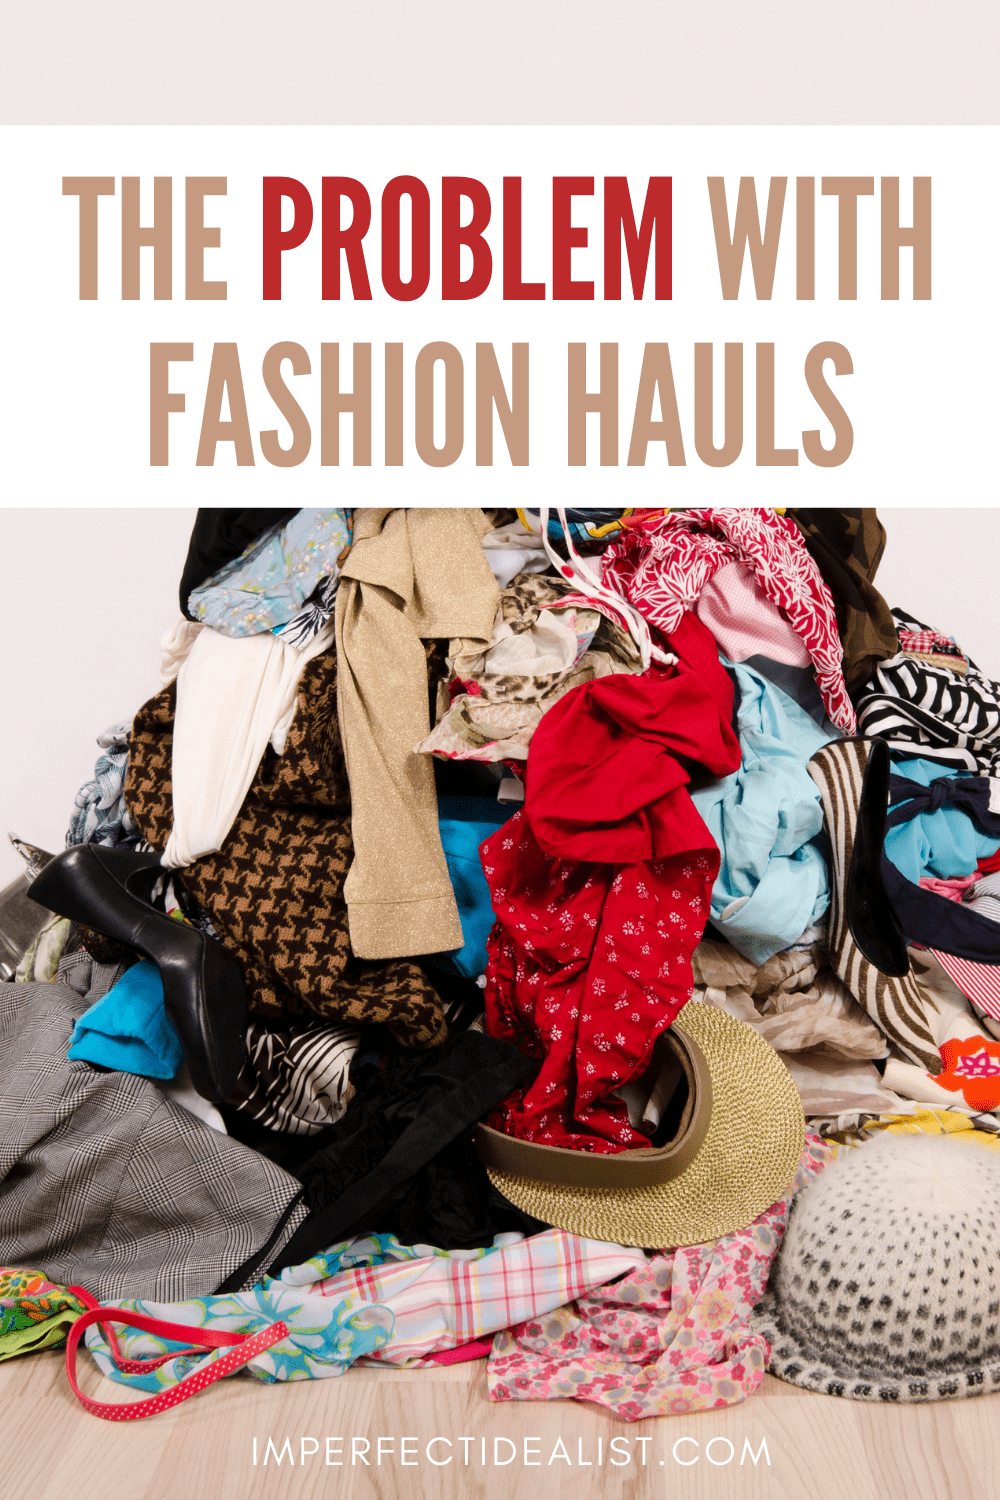 Pinterest pin that reads 'the problem with fashion hauls' over an image of a huge pile of clothing